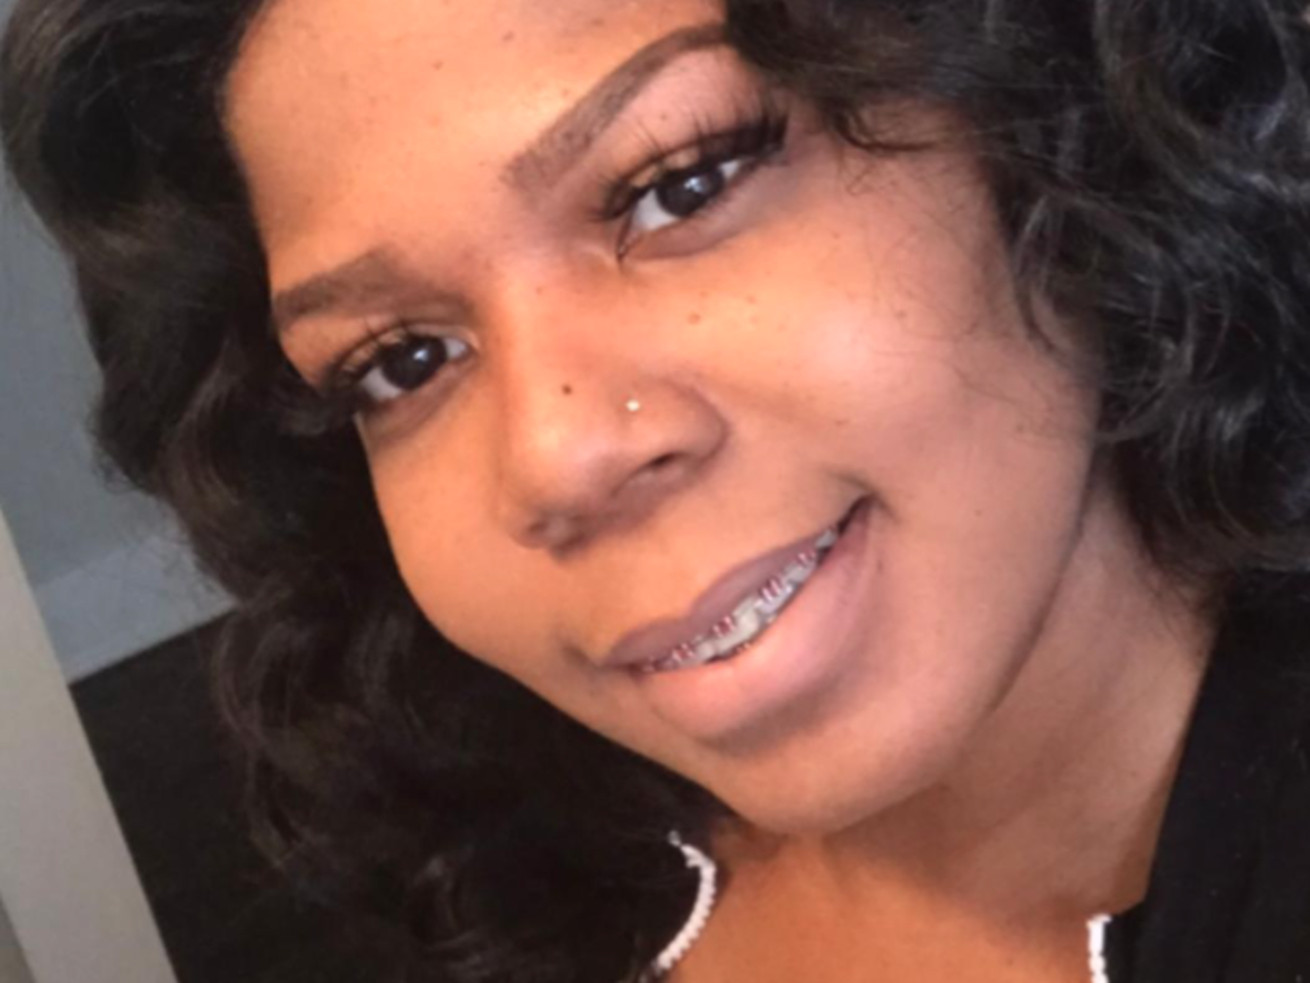 Mother of 3 killed in weekend mass shooting was in the 'prime of her life,' cousin says